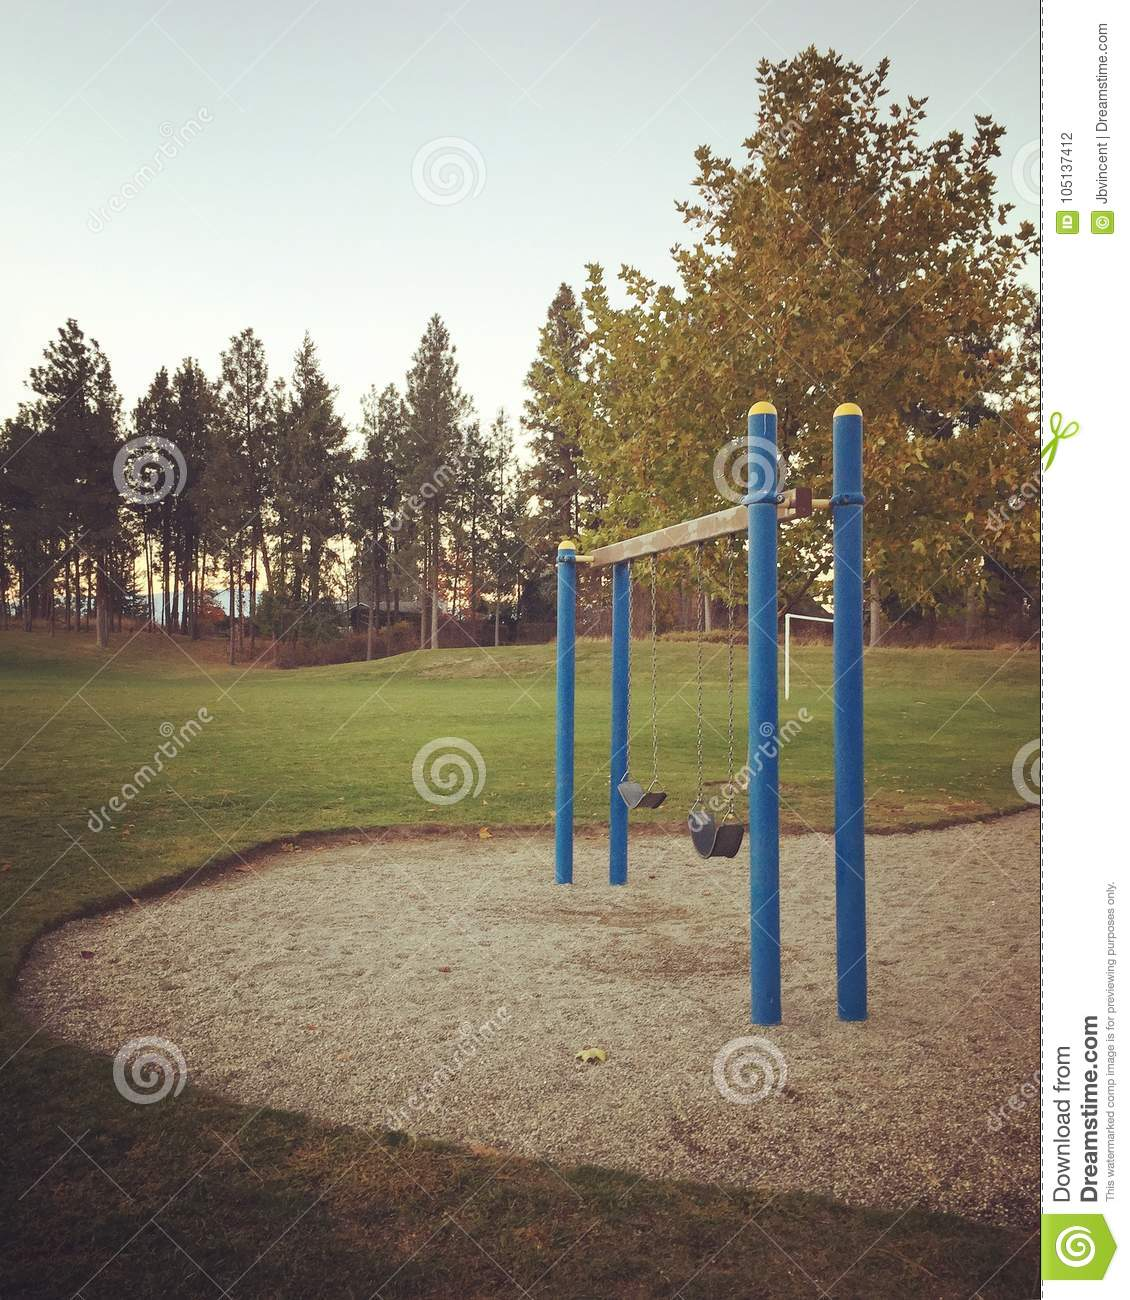 Empty Swingset In Field With Tall Trees Background Stock